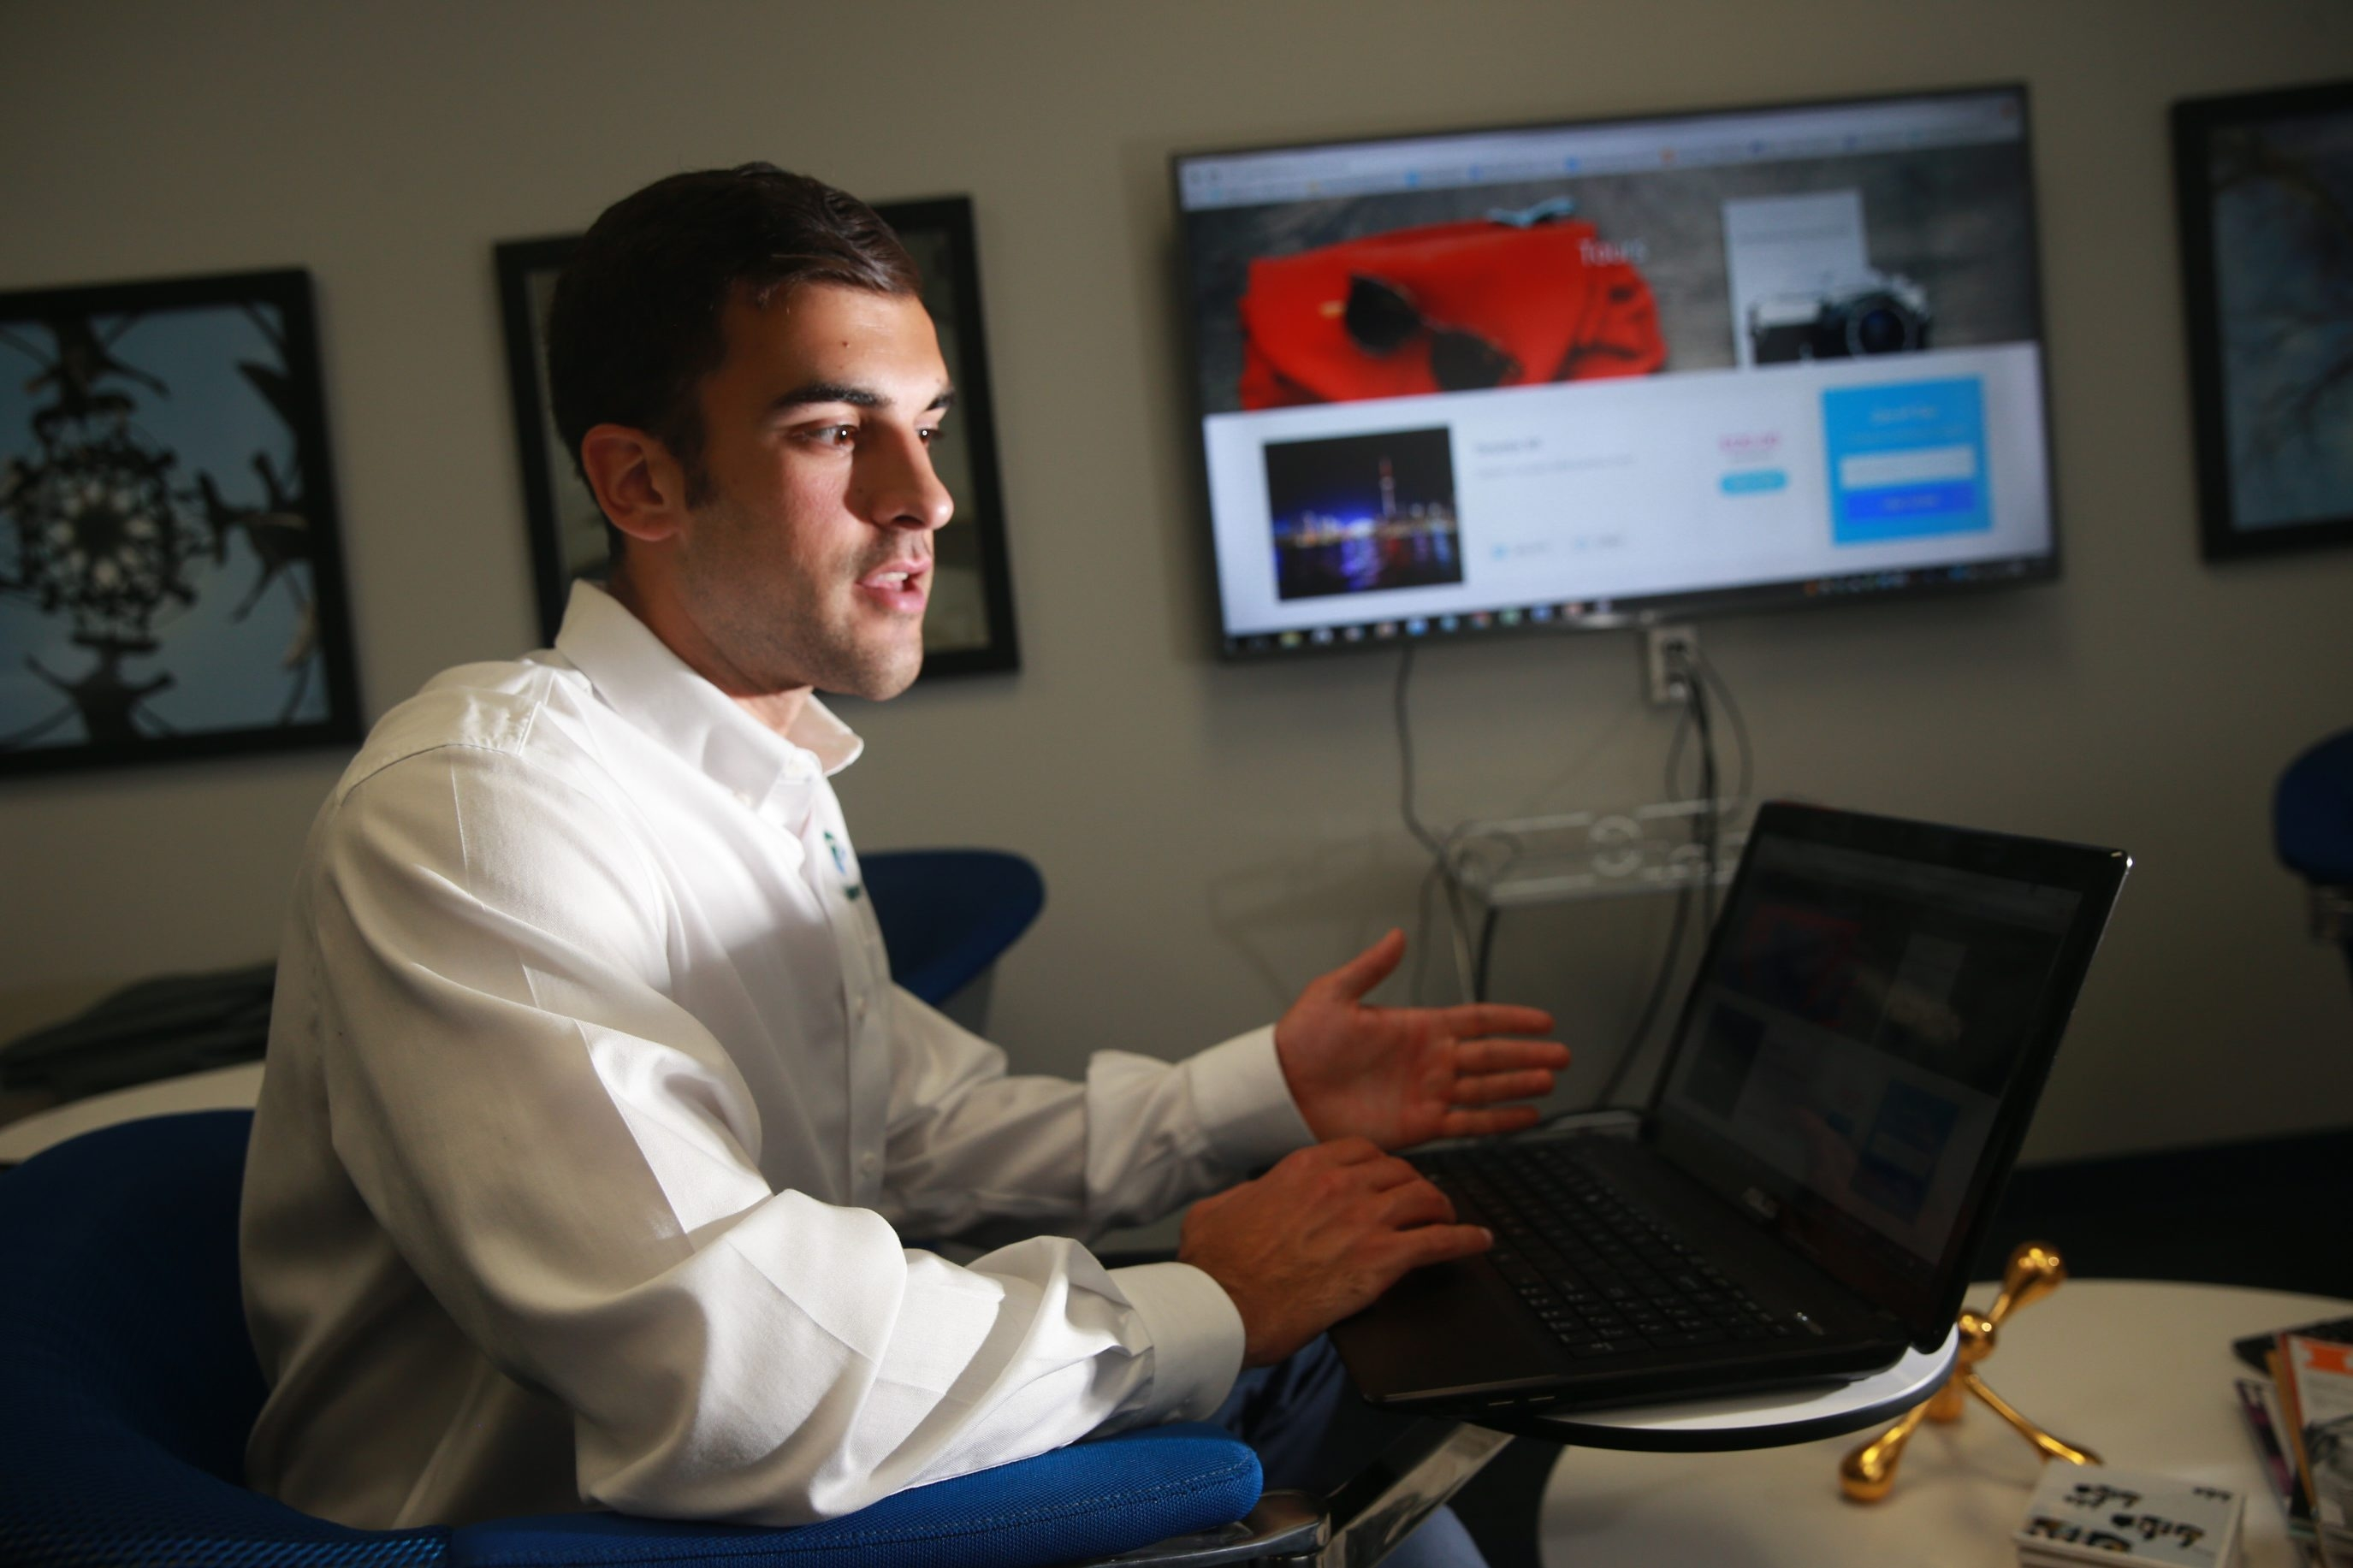 Matt Daddario, a Daemen College accounting graduate student, founded a company called Triploma, he ran it from his parents' home since March,  but won admission to the Buffalo Student Sandbox business development program this summer and is now located at the Sandbox incubator on UB North Campus in Amherst, N.Y.,on Wednesday July 13, 2016.Daddario  provides guided tours to college-age travelers to cities that are within driving distance of Buffalo, the company handles all the planning, arranging transportation, figuring out which hostels to stay in, where to eat (inexpensively) and what attractions to see, they've done one trip and second one, to Toronto, is this weekend.  (John Hickey/Buffalo News)